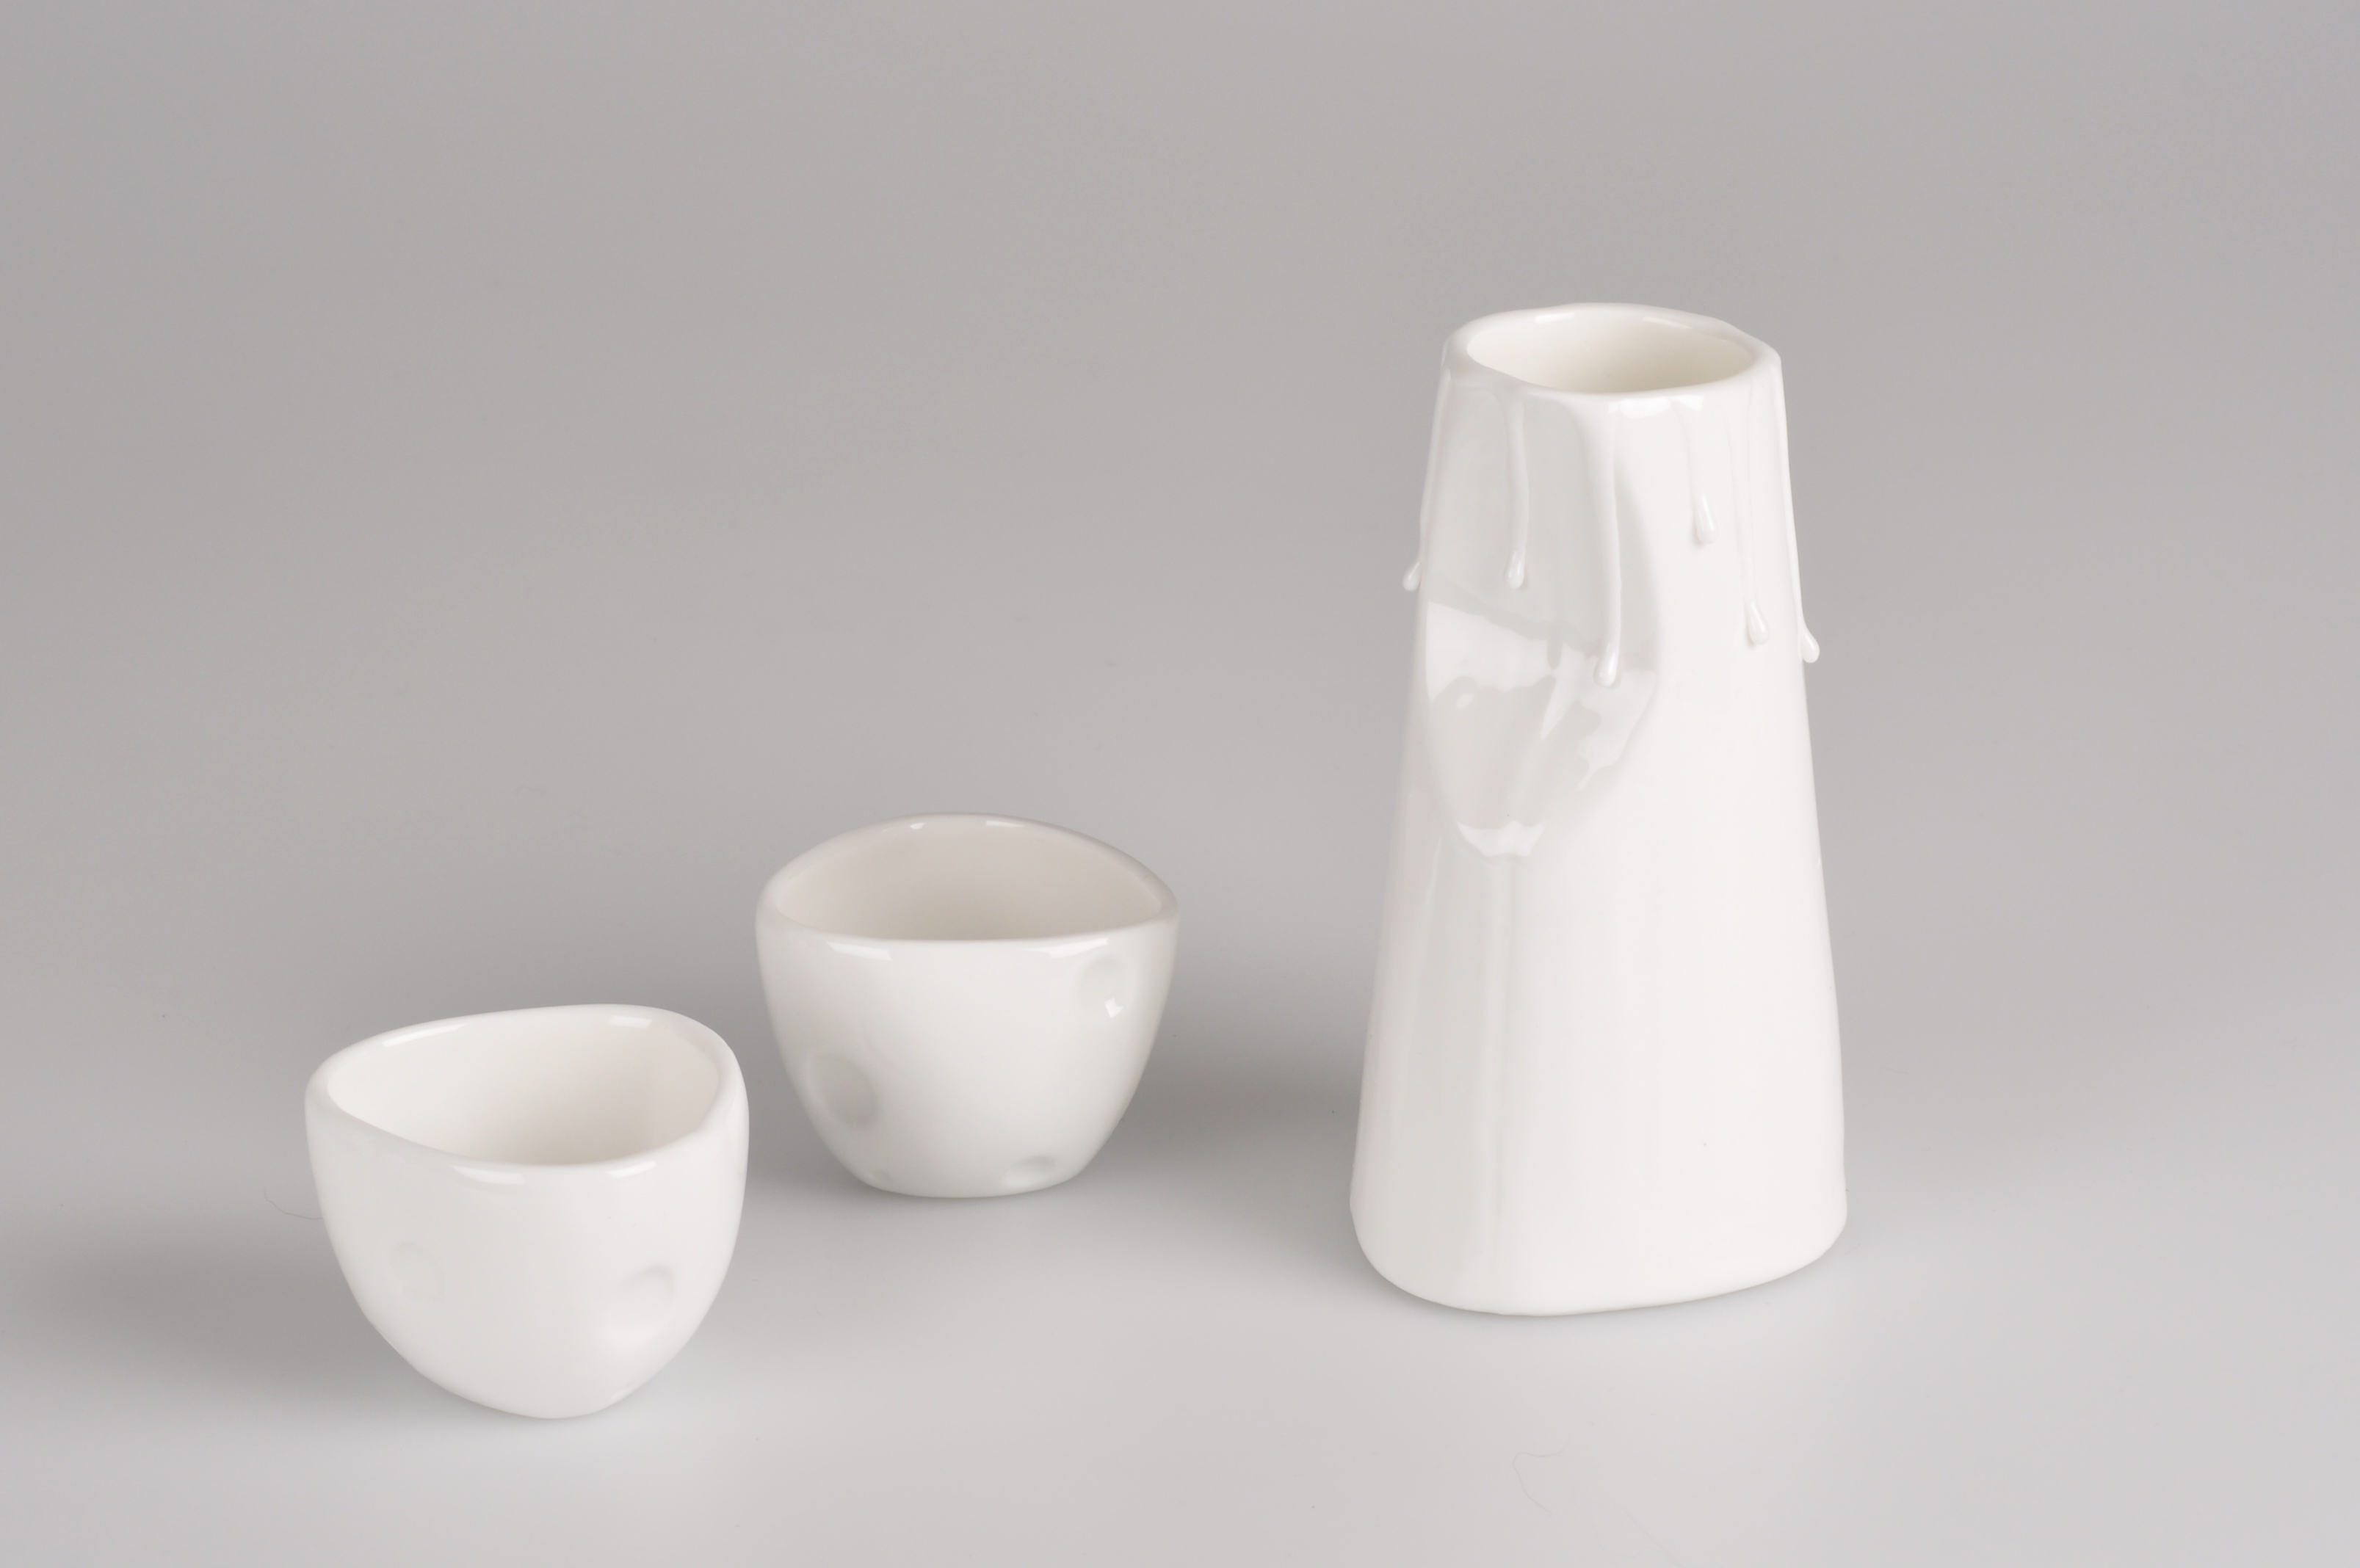 Cheese Sake Bottle and Cup